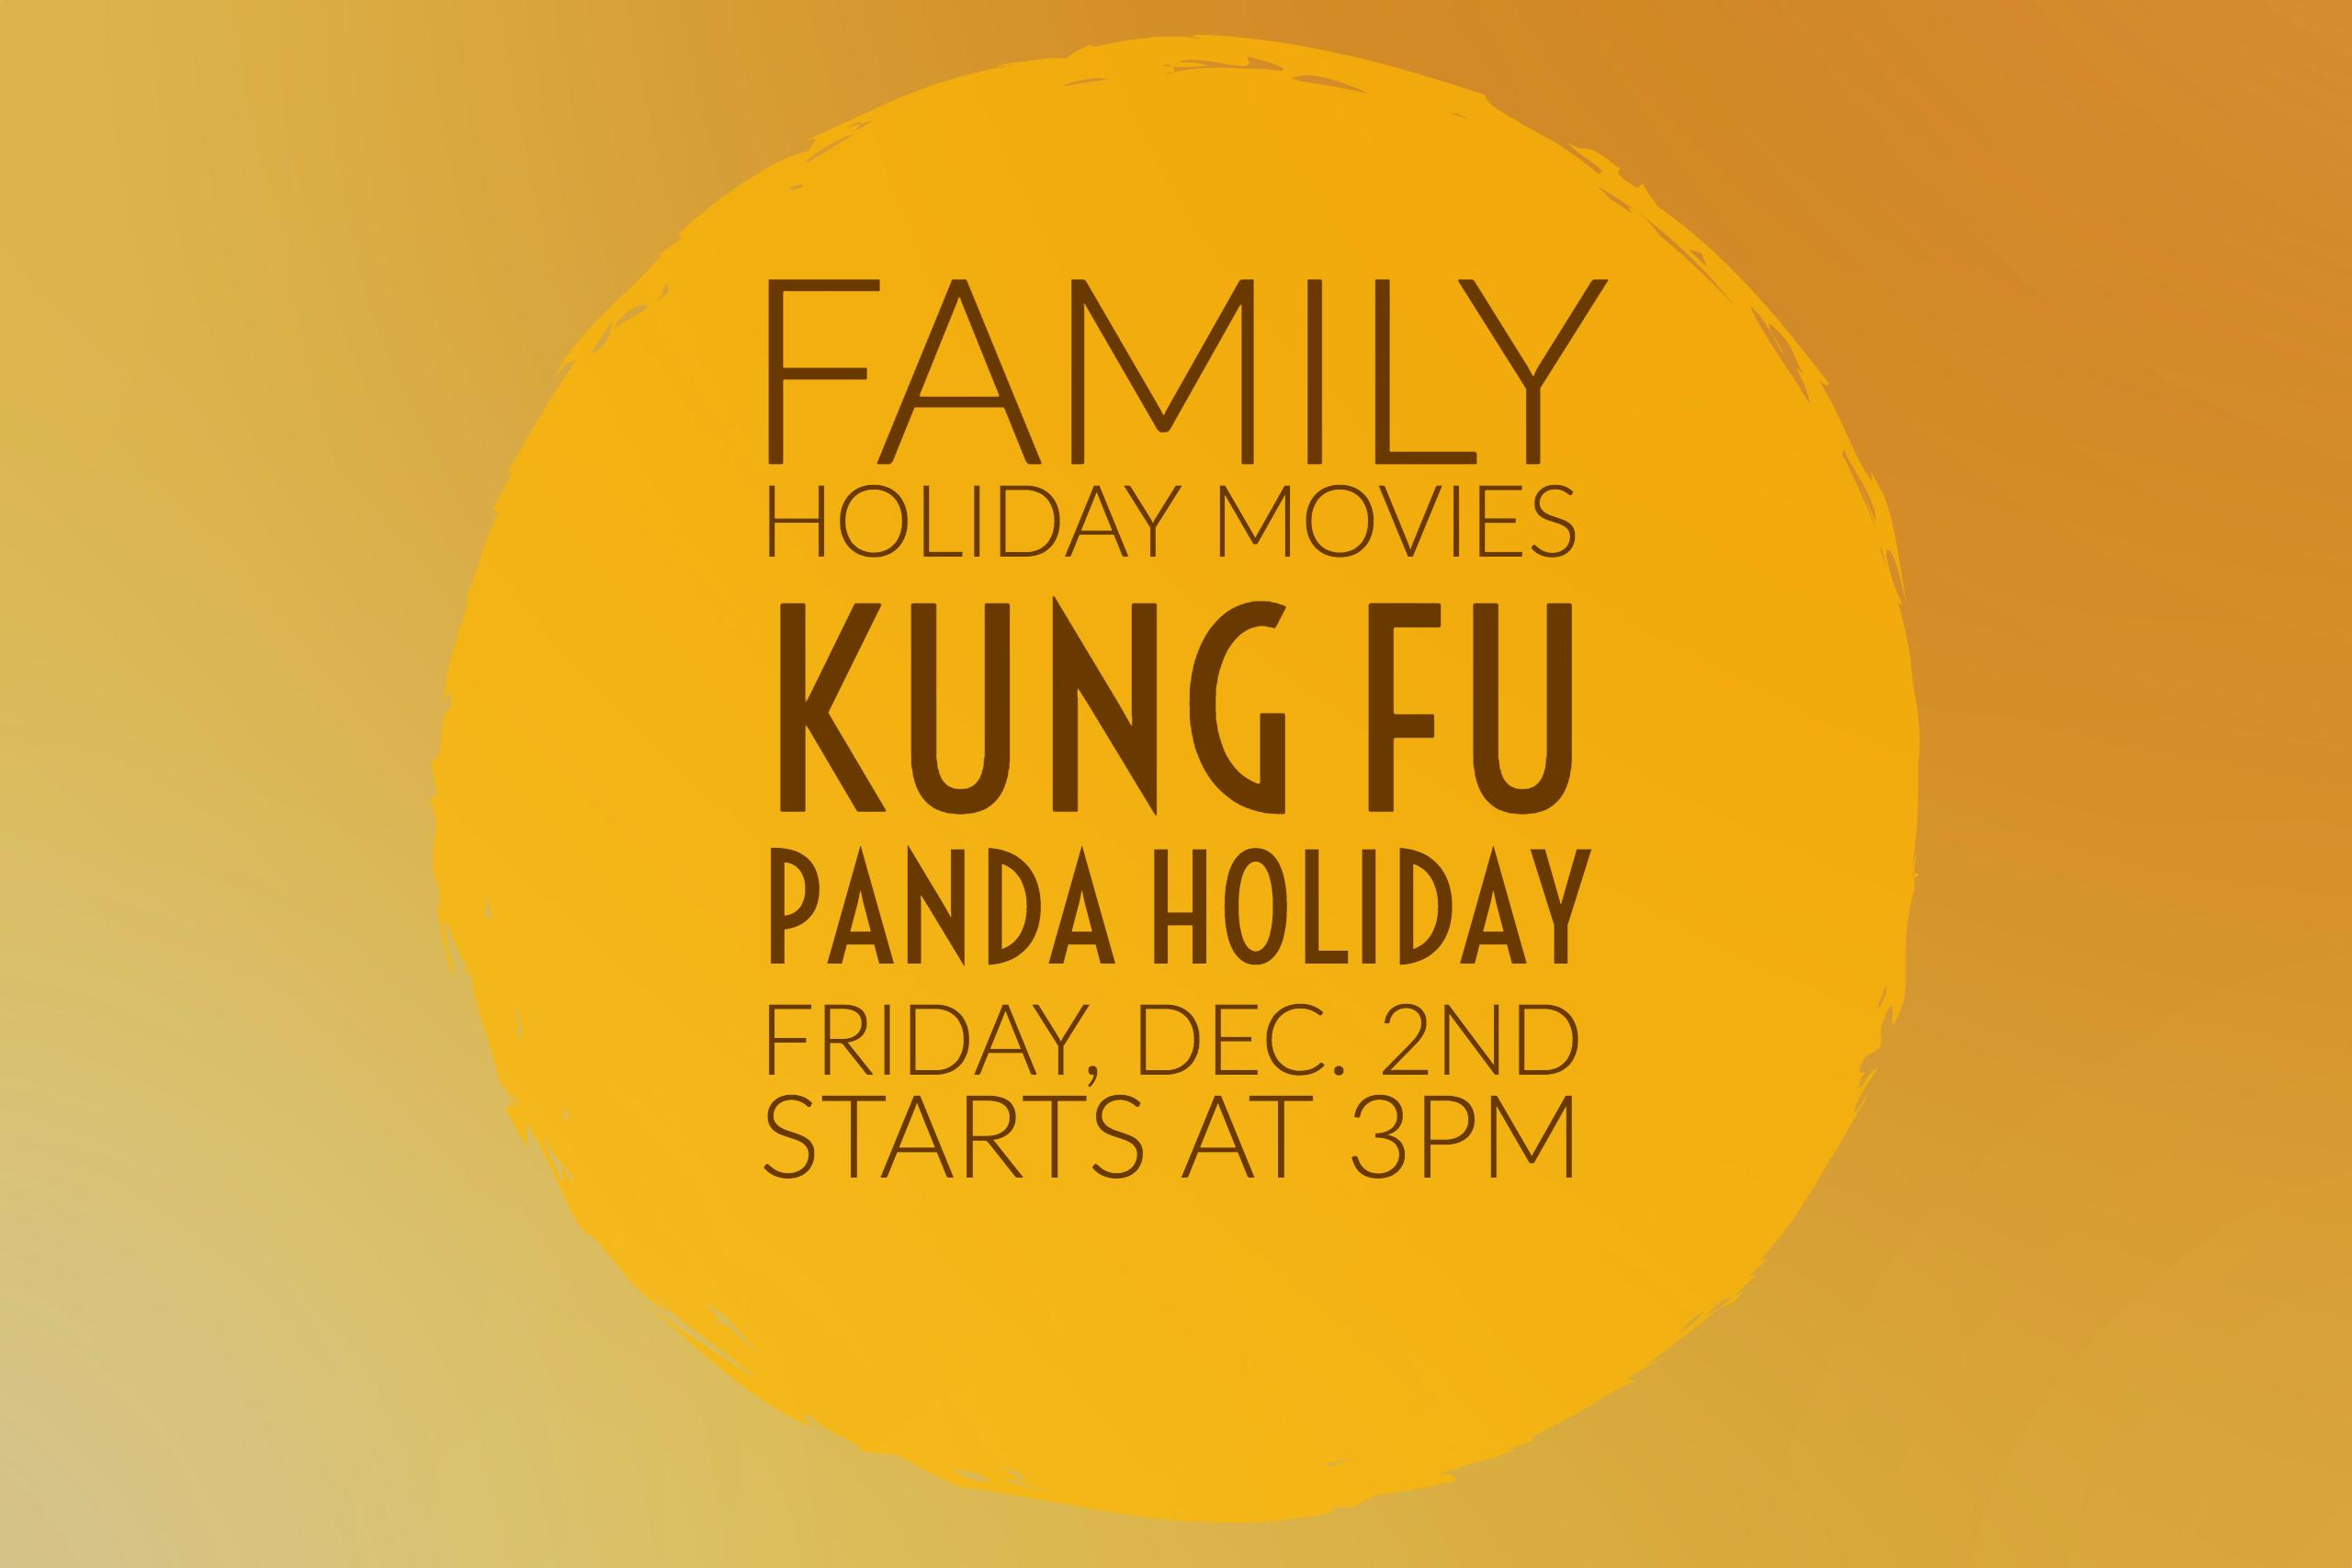 Family Holiday Movies – December 2 – The Little Falls Public